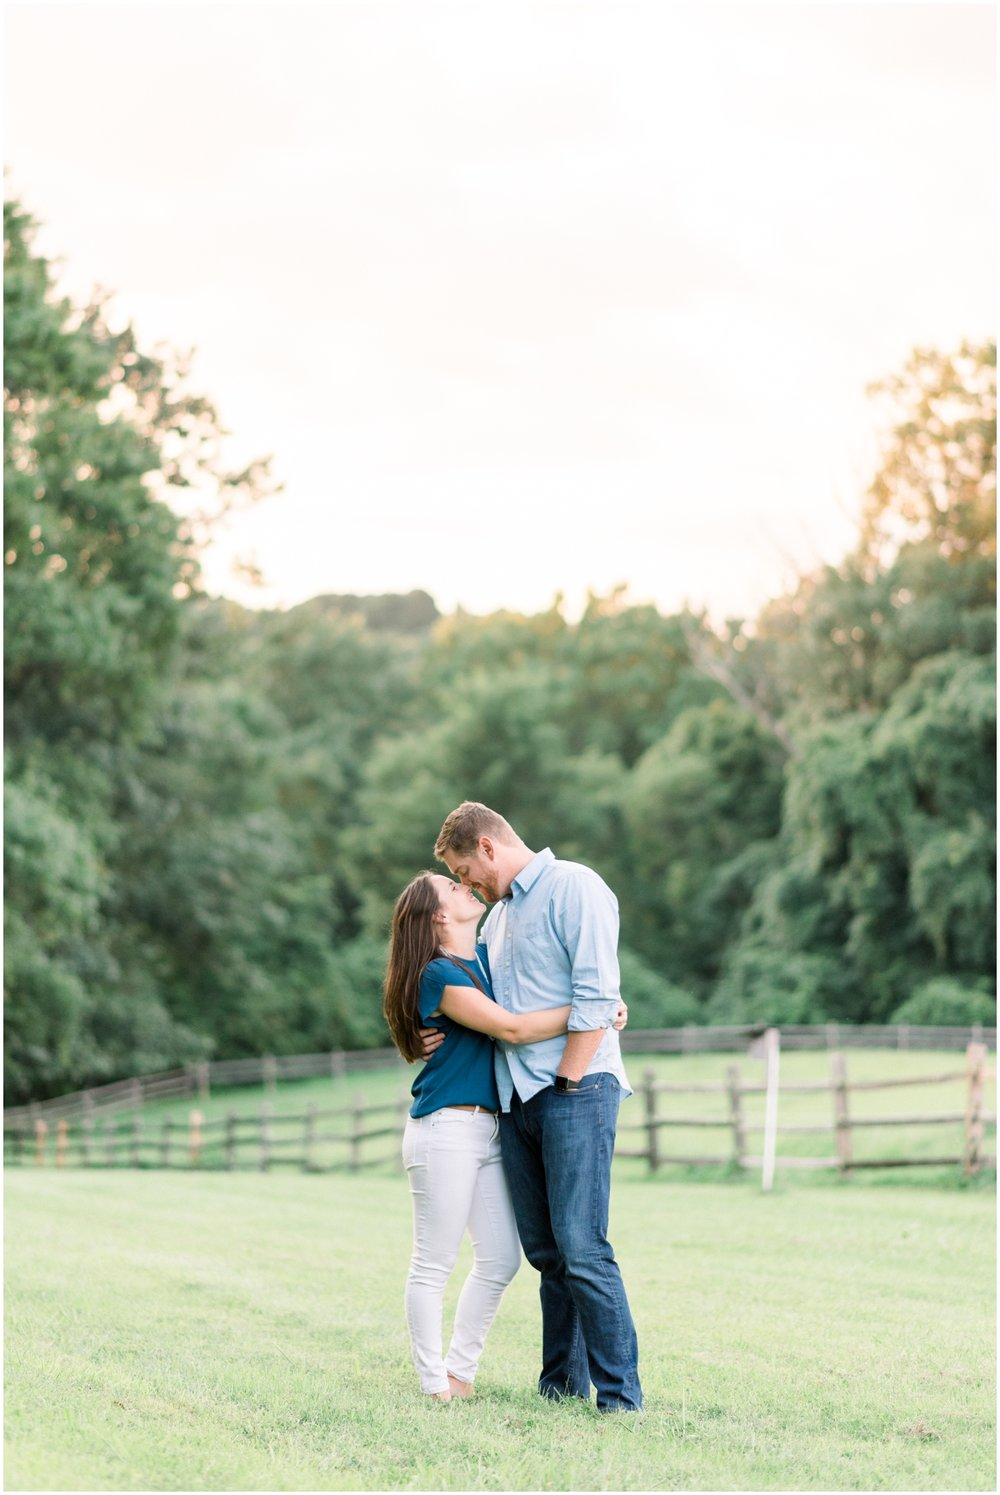 Summer Engagement Session at Hunting Hill Mansion - Krista Brackin Photography_0050.jpg